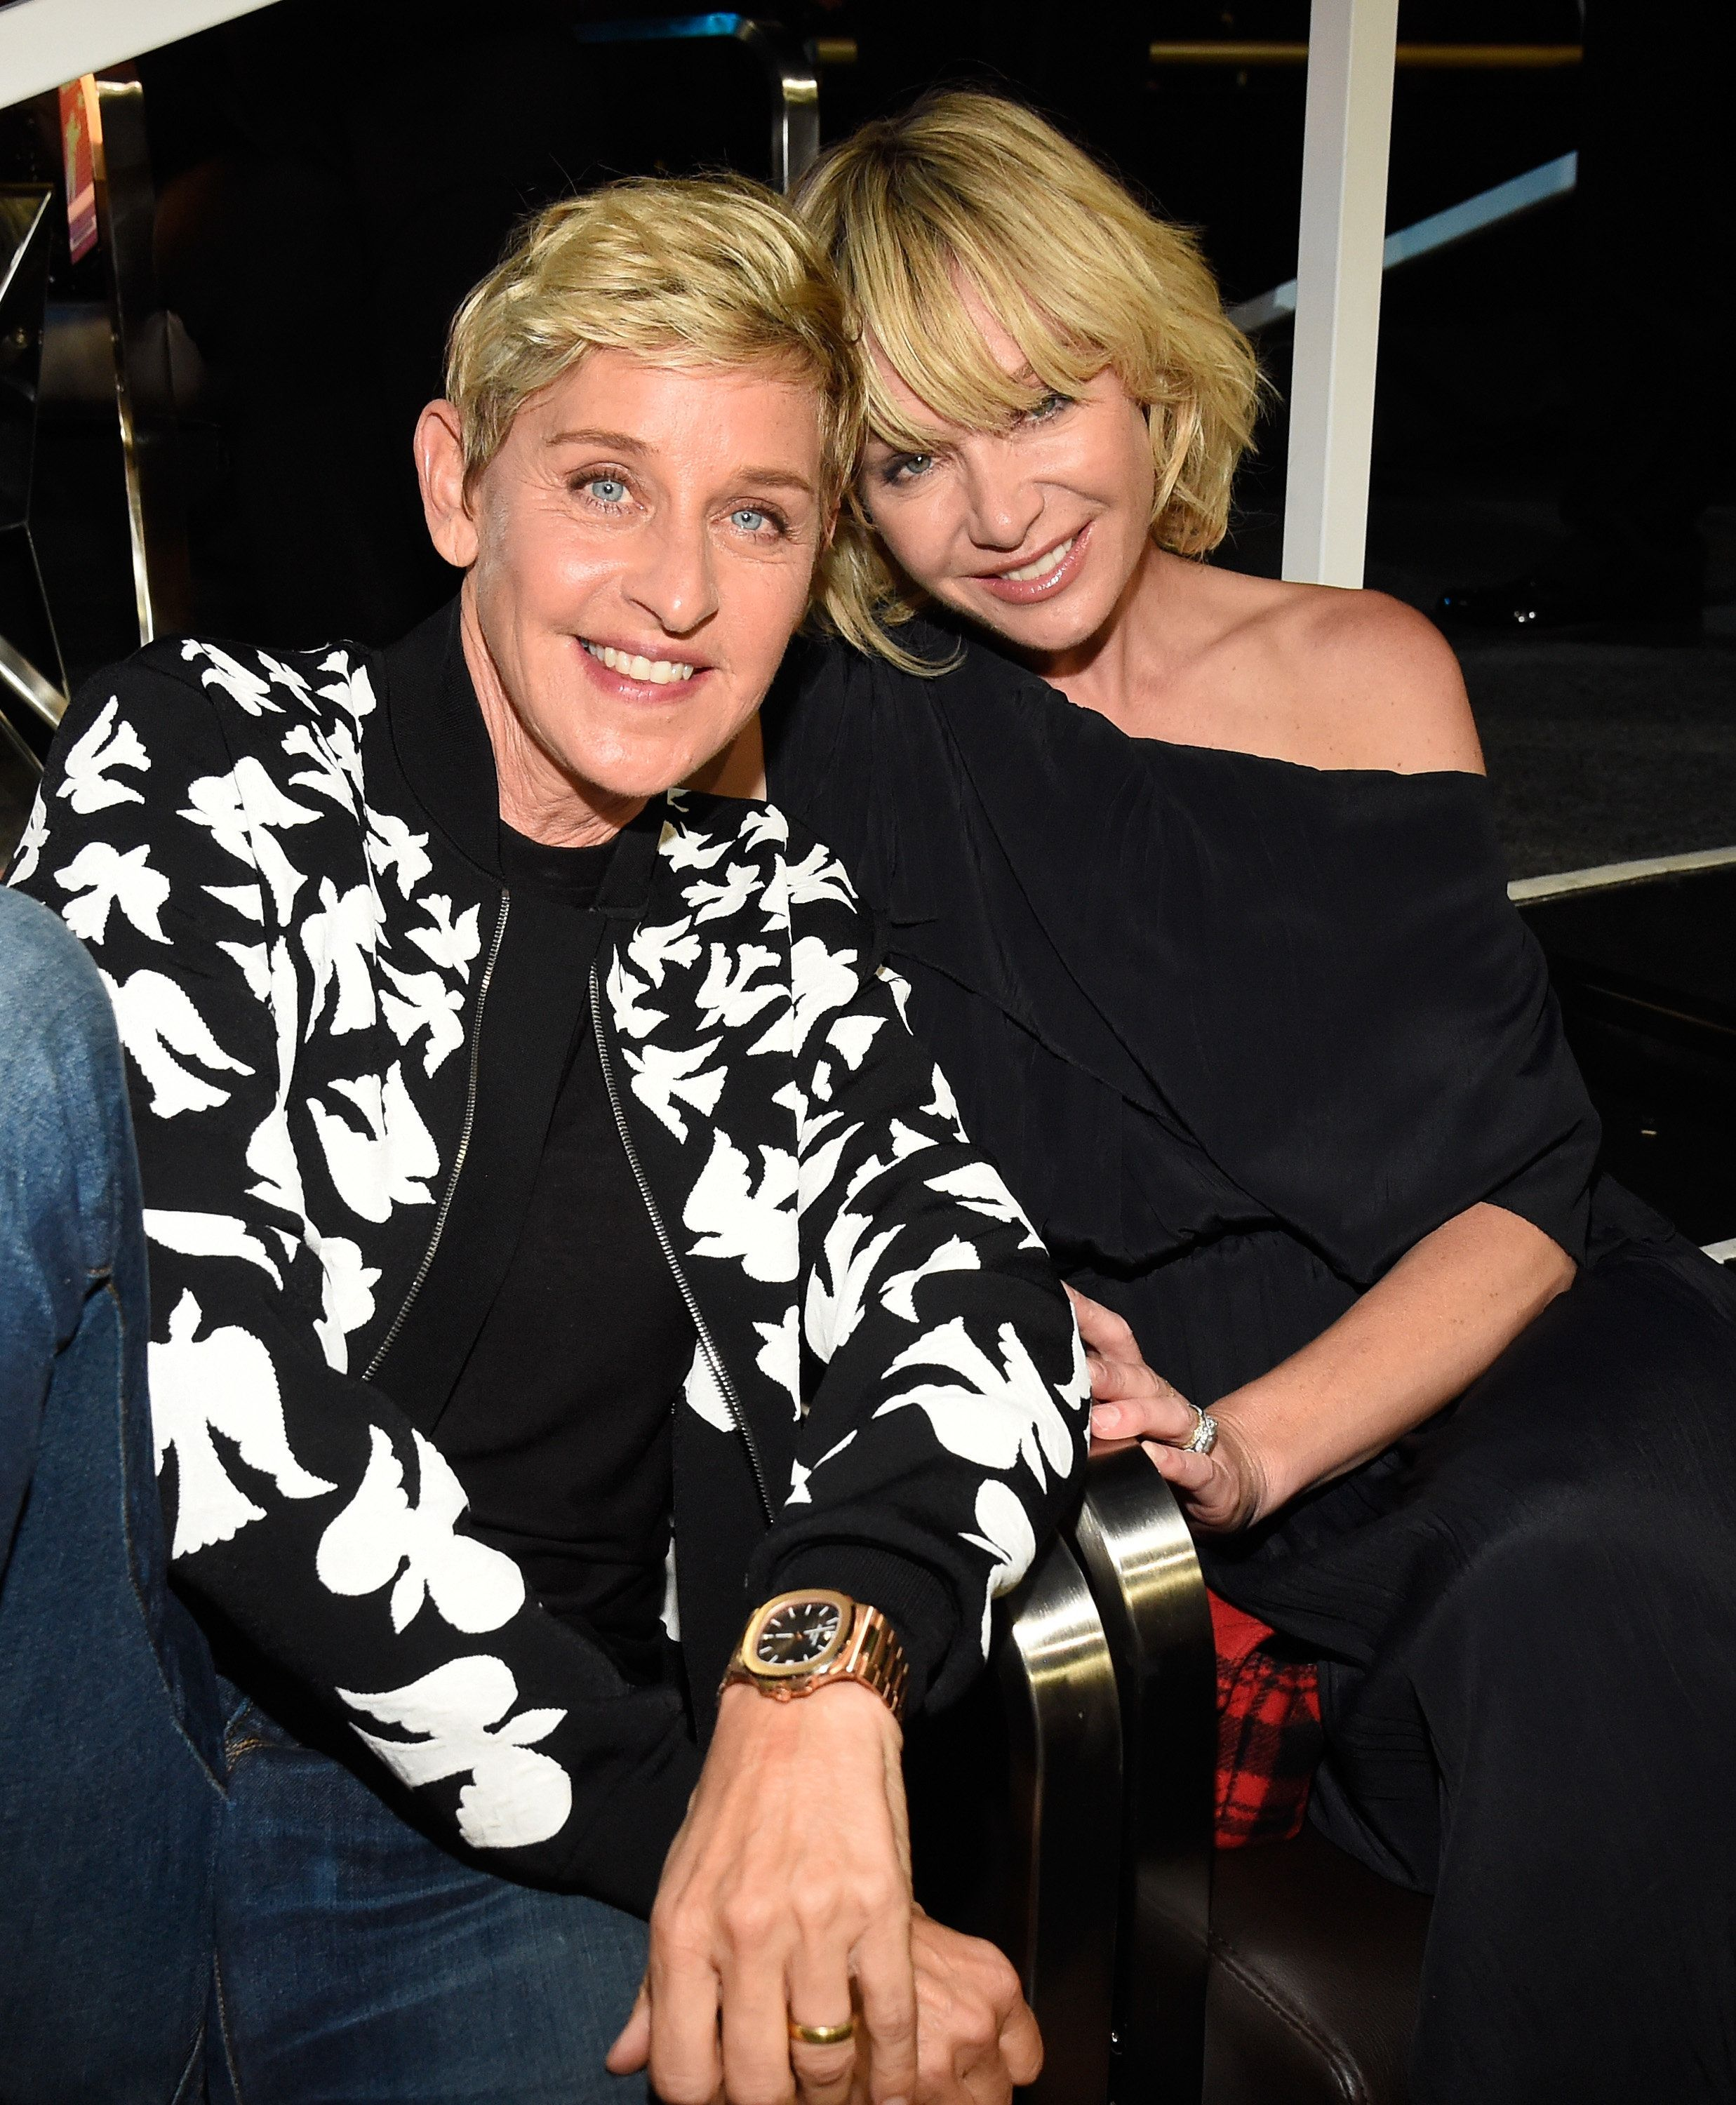 INGLEWOOD, CA - AUGUST 27: Ellen DeGeneres (L) and  Portia de Rossi attend the 2017 MTV Video Music Awards at The Forum on August 27, 2017 in Inglewood, California.  (Photo by Kevin Mazur/WireImage)